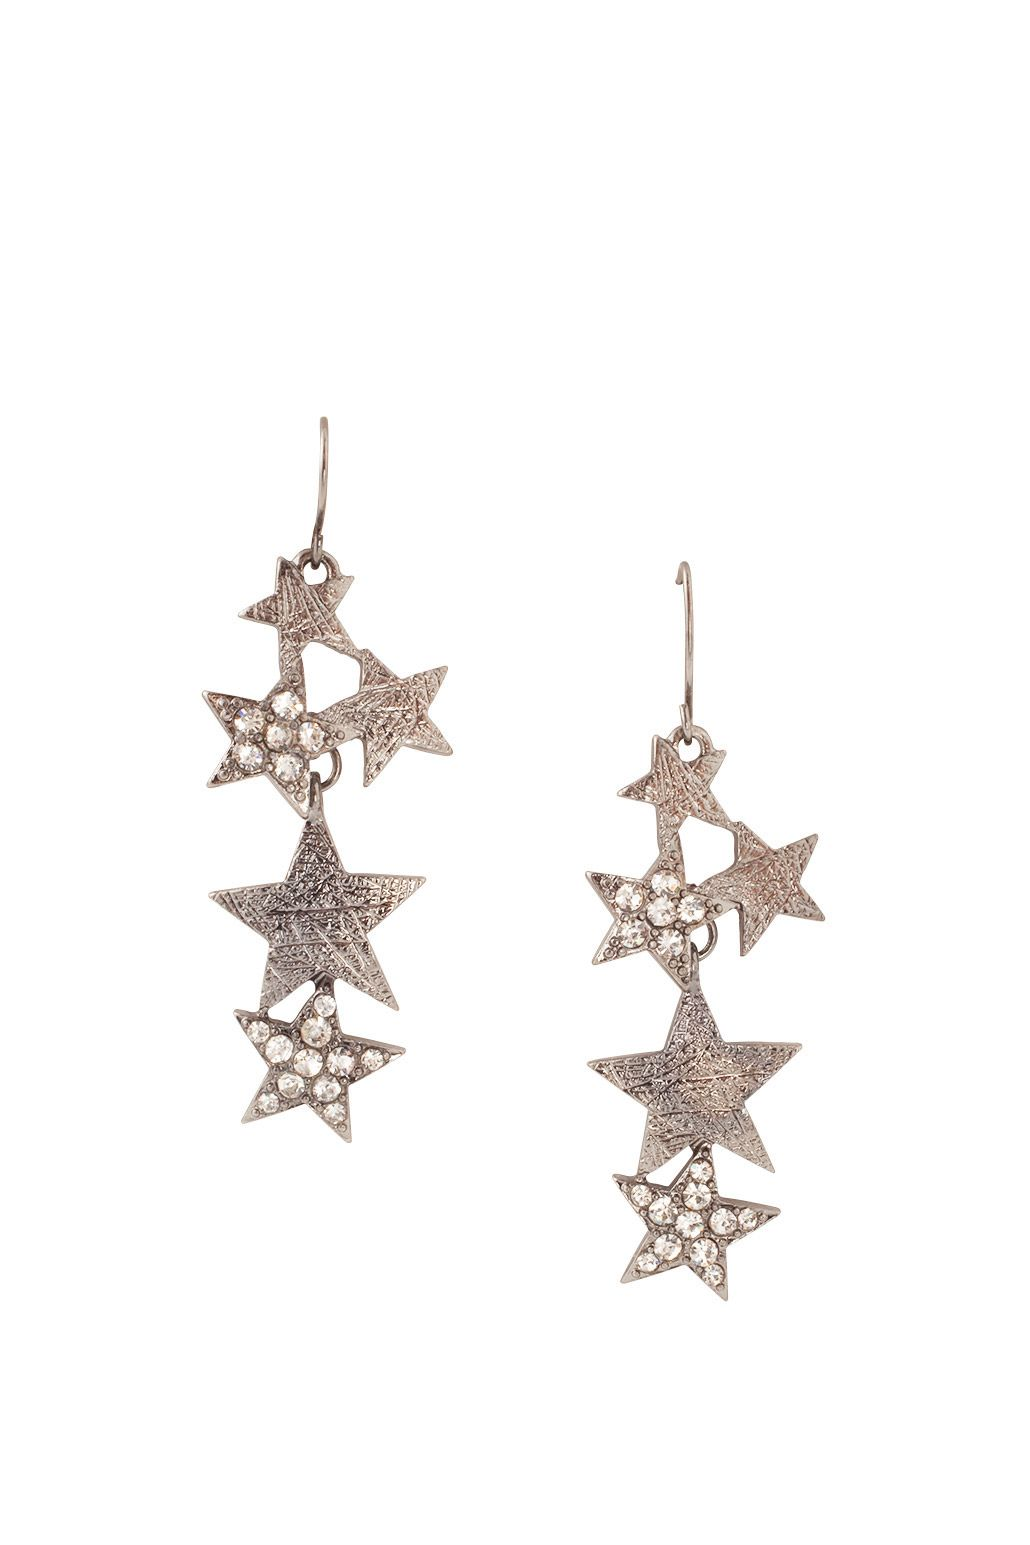 #Esprit #star #earrings